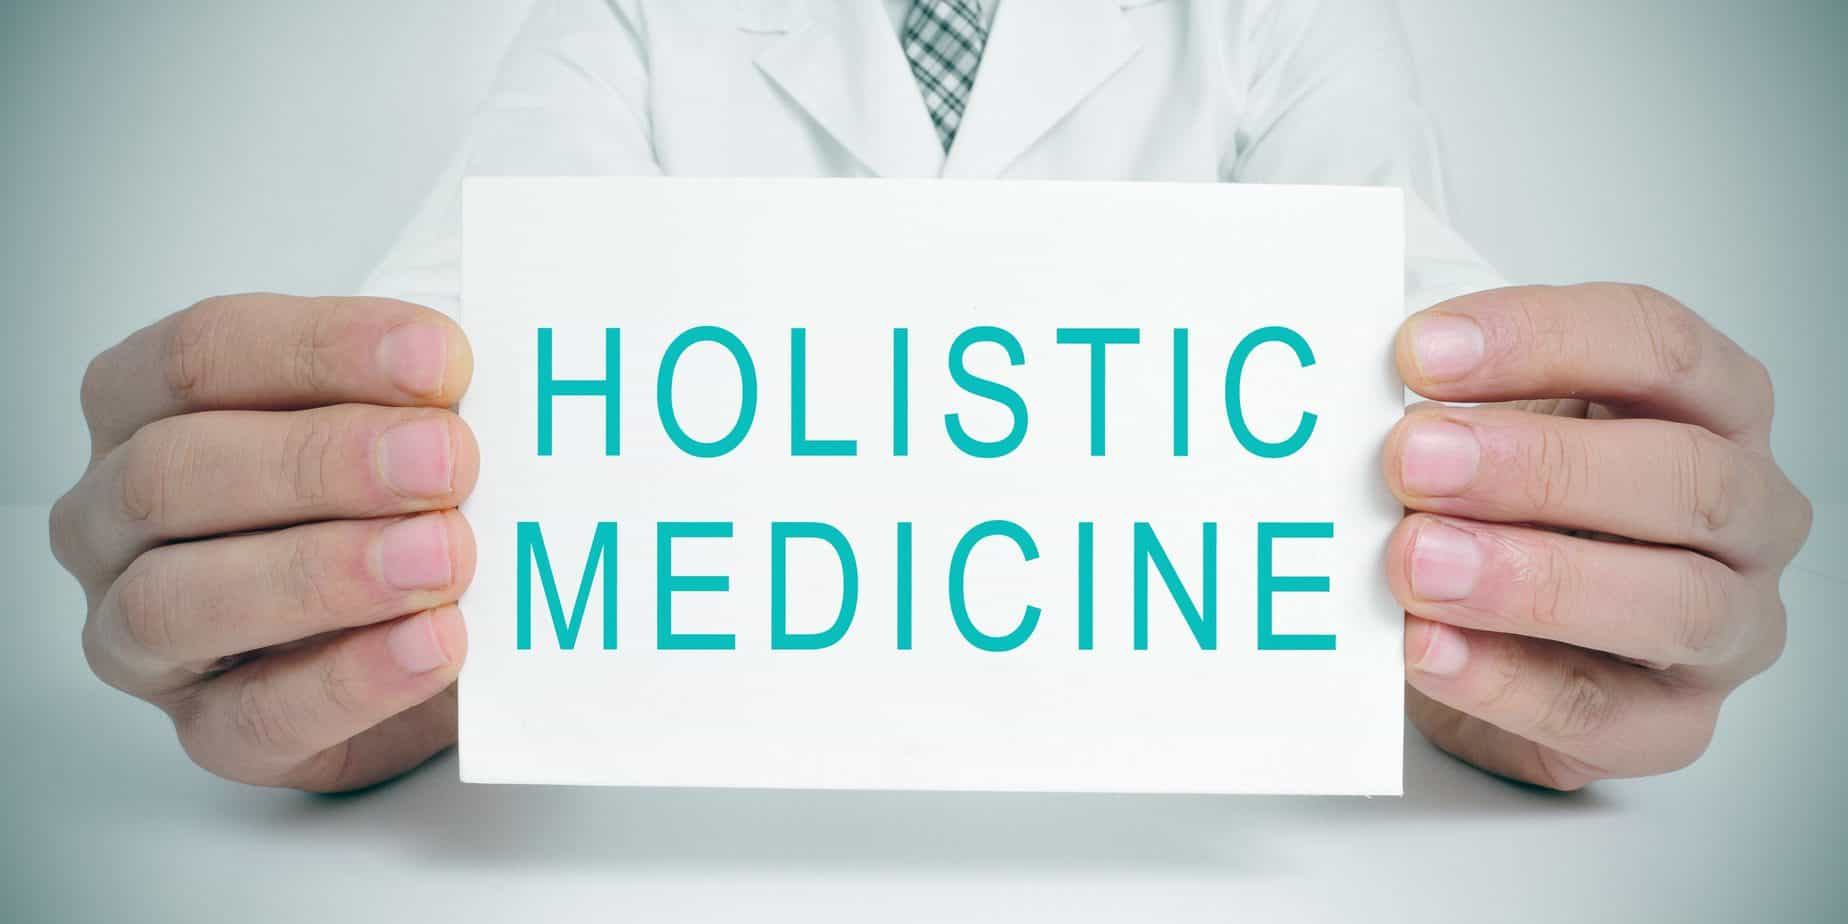 holistic medicine better than conventianal medicine Treatment & care many colon cancer treatment options are available for colorectal cancer, including surgery, chemotherapy,  tips to better manage your migraine.